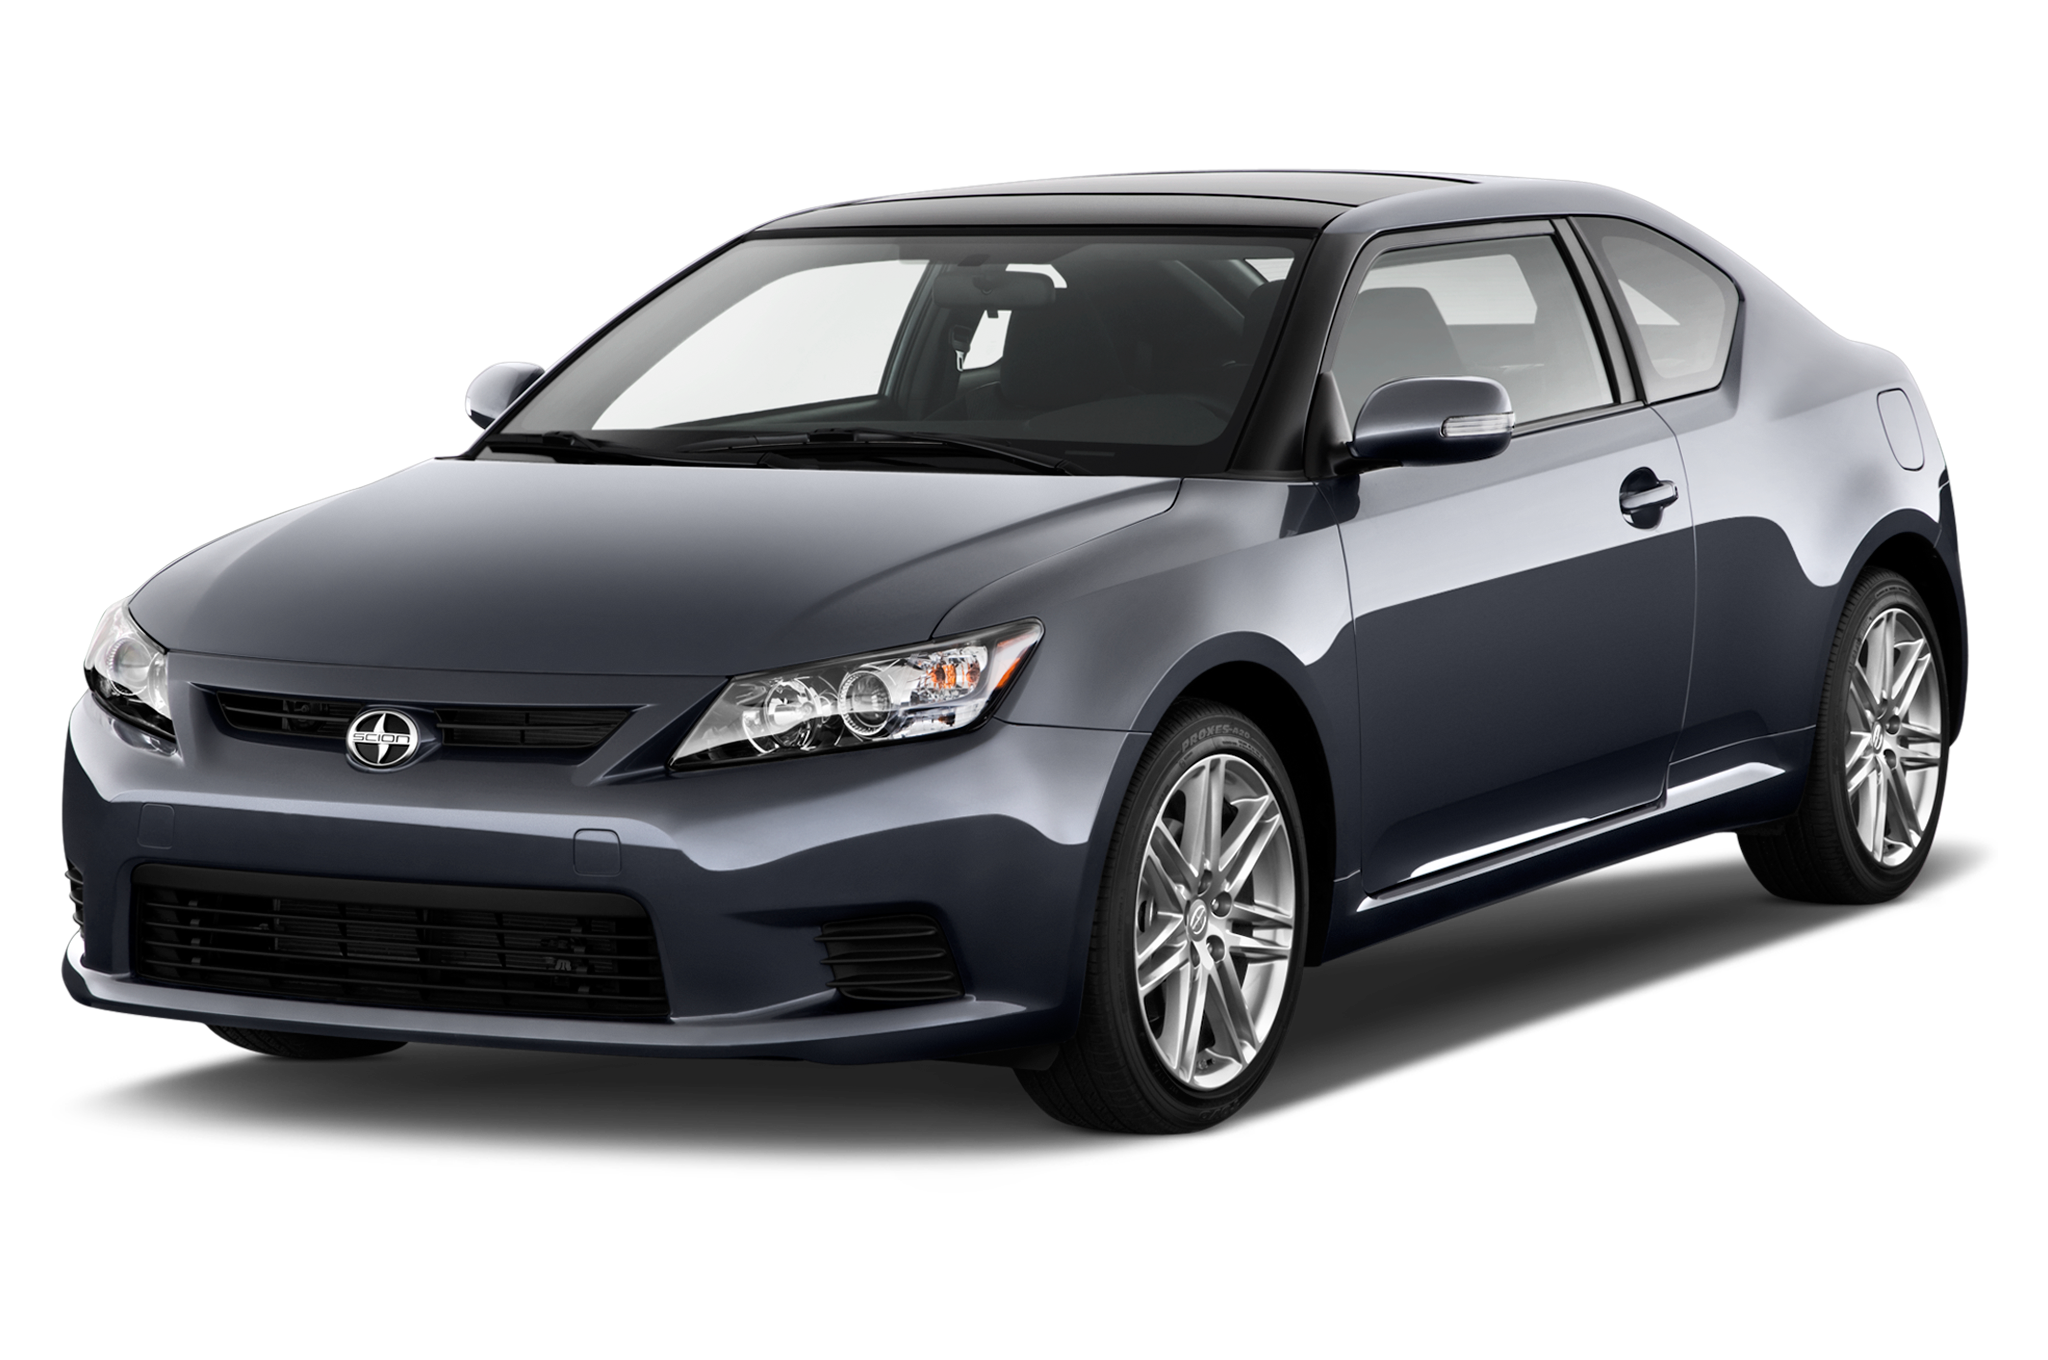 new york 2013 facelifted 2014 scion tc coming to big apple. Black Bedroom Furniture Sets. Home Design Ideas